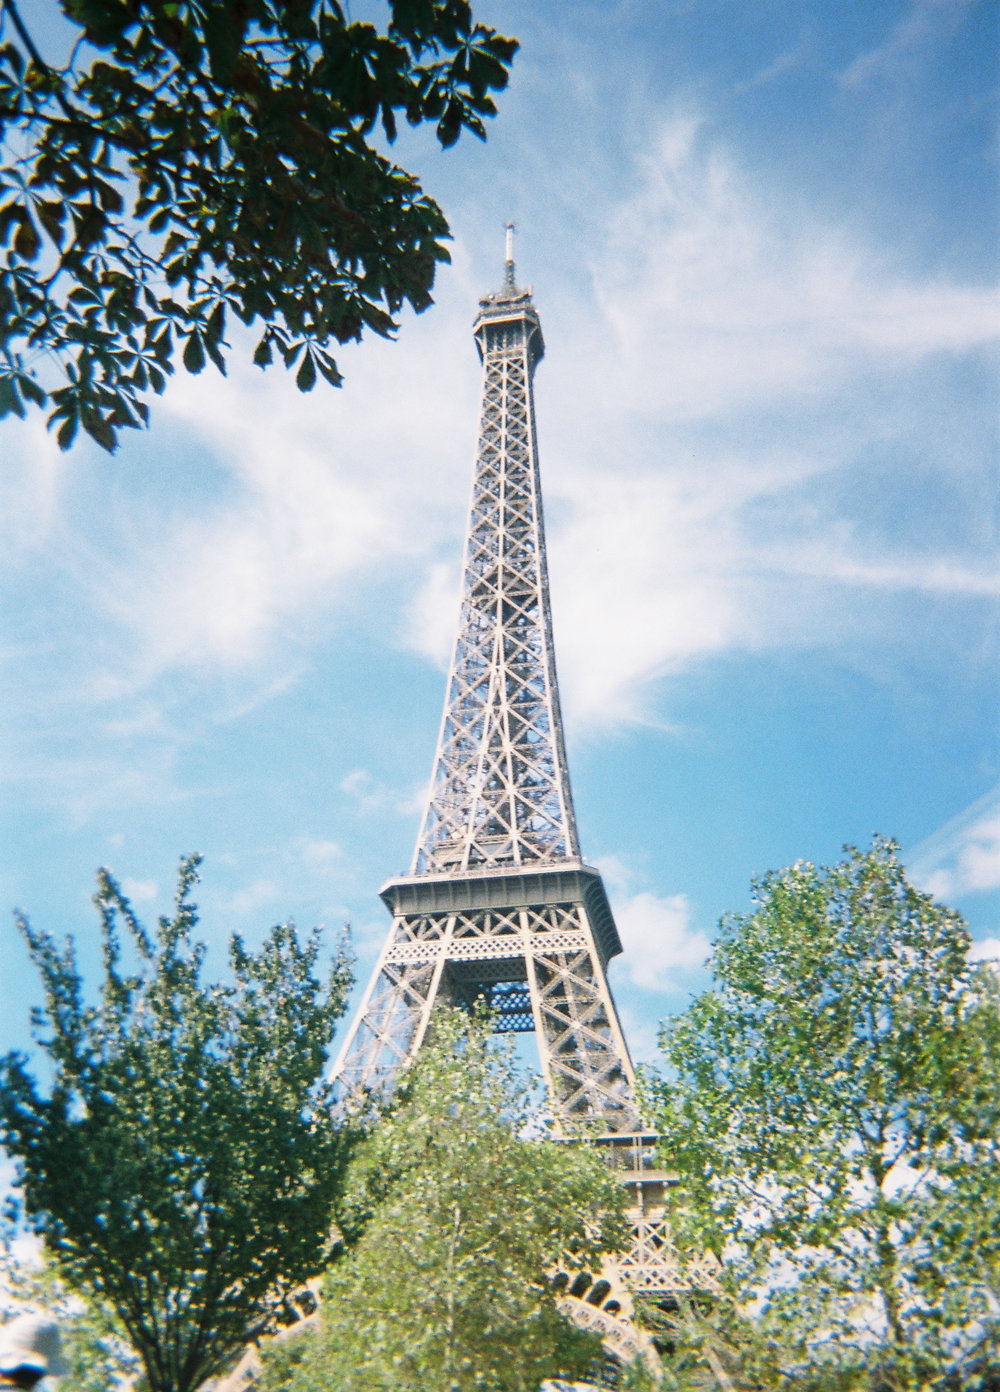 4th September - Eiffel Tower, Paris